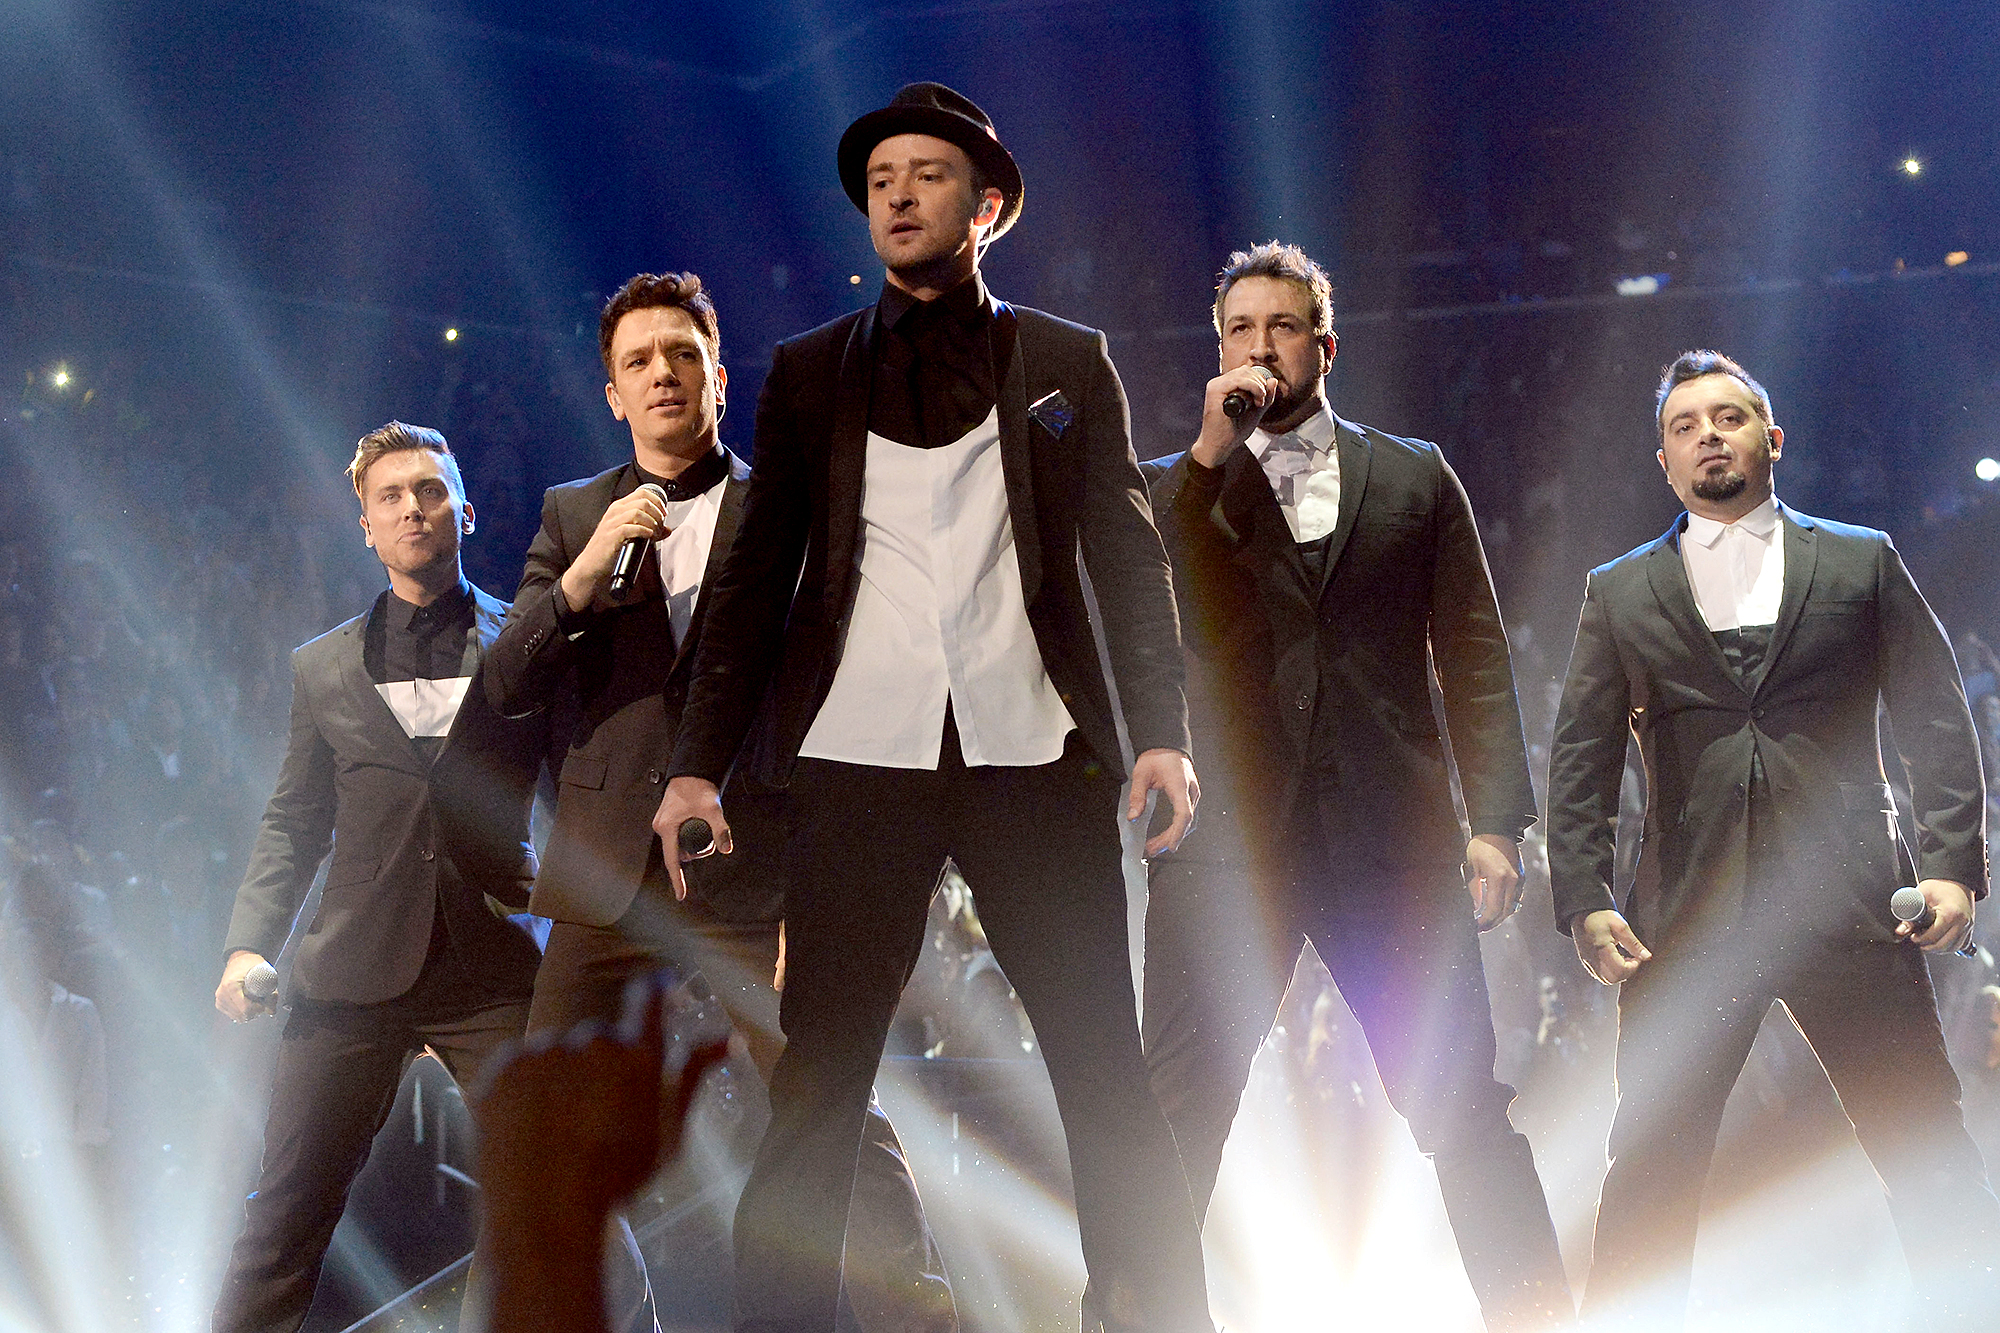 Nsync-Performing-Coachella - Lance Bass, JC Chasez, Justin Timberlake, Joey Fatone and Chris Kirkpatrick of 'NSync perform during the 2013 MTV Video Music Awards at Barclays Center in Brooklyn on August 25, 2013.